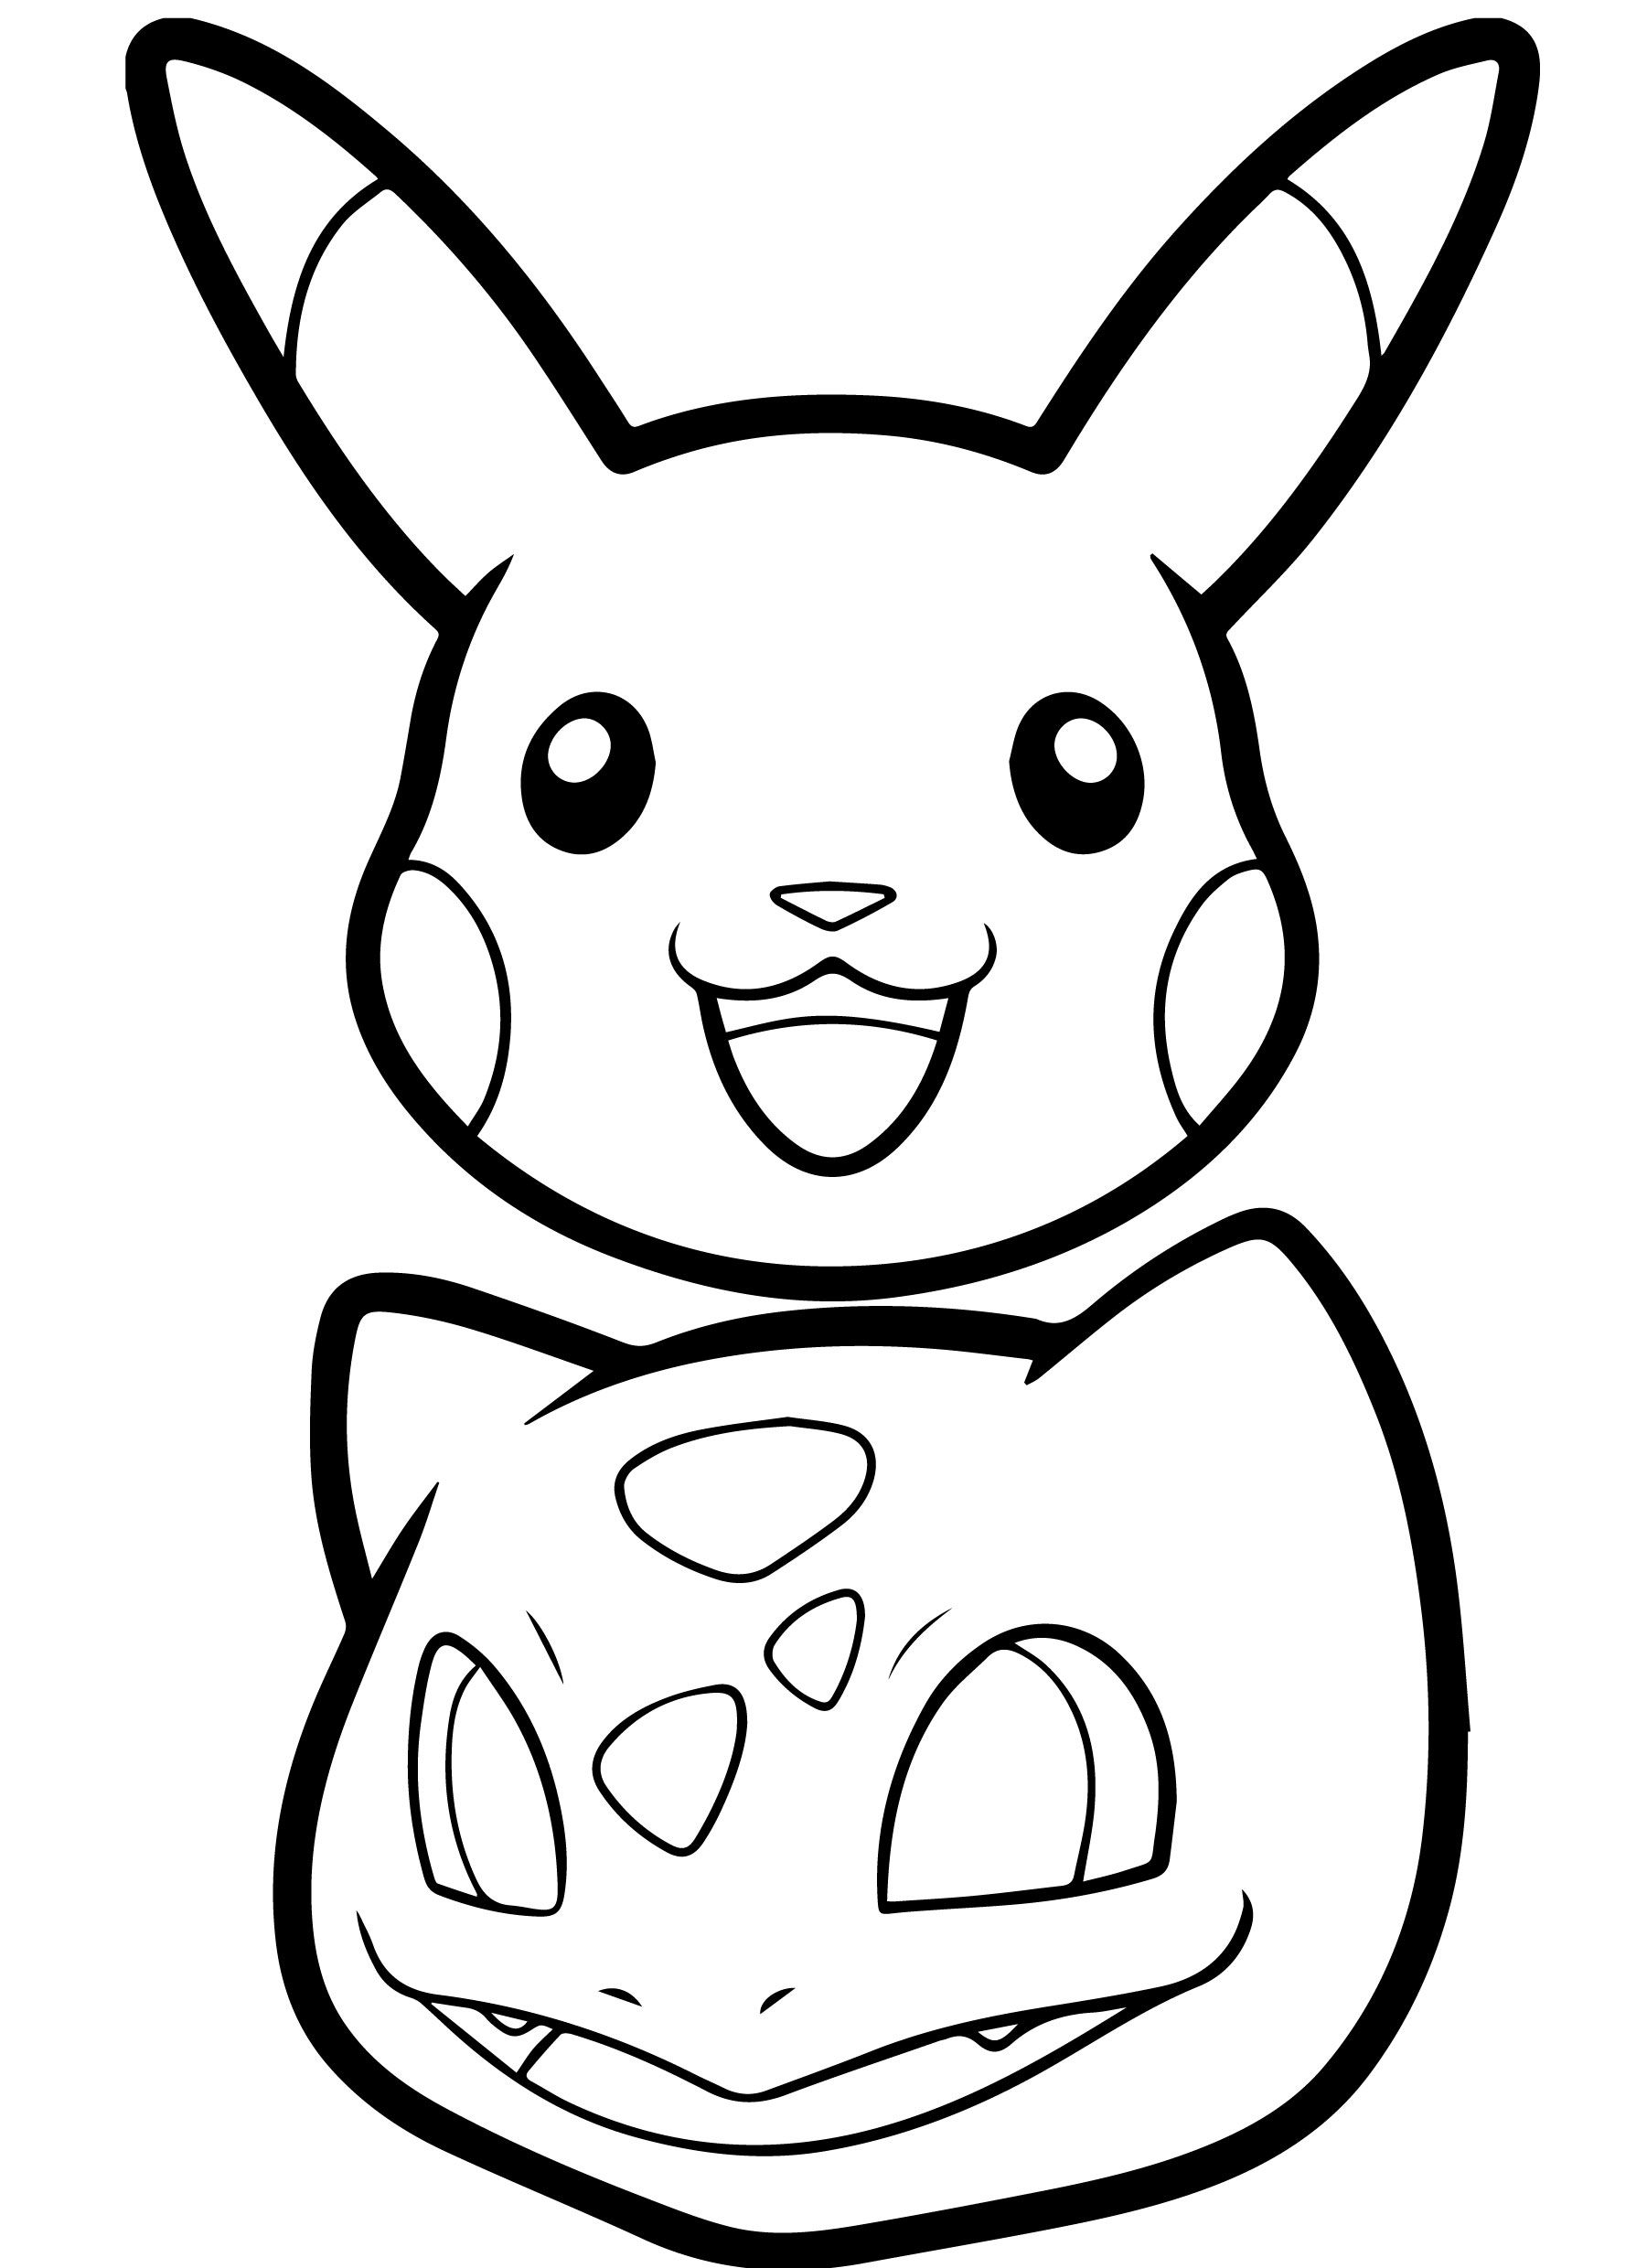 Pikachu Coloring Pages Head Pikachu Coloring Page Cartoon Coloring Pages Mermaid Coloring Book